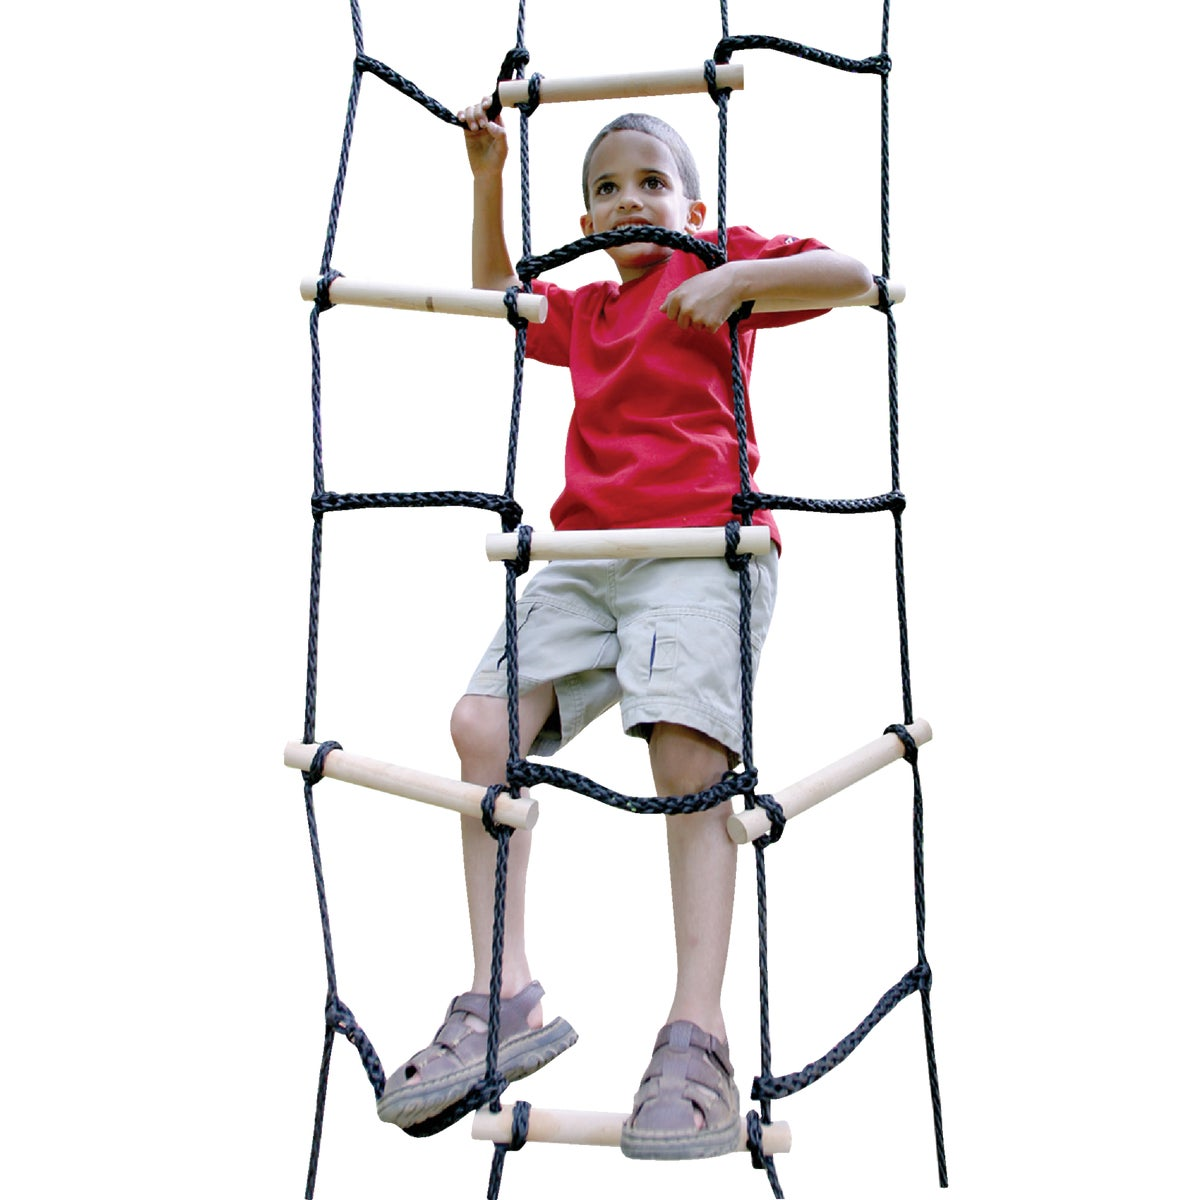 CARGO CLIMBING NET - NE4481-1 by Swing N Slide Corp